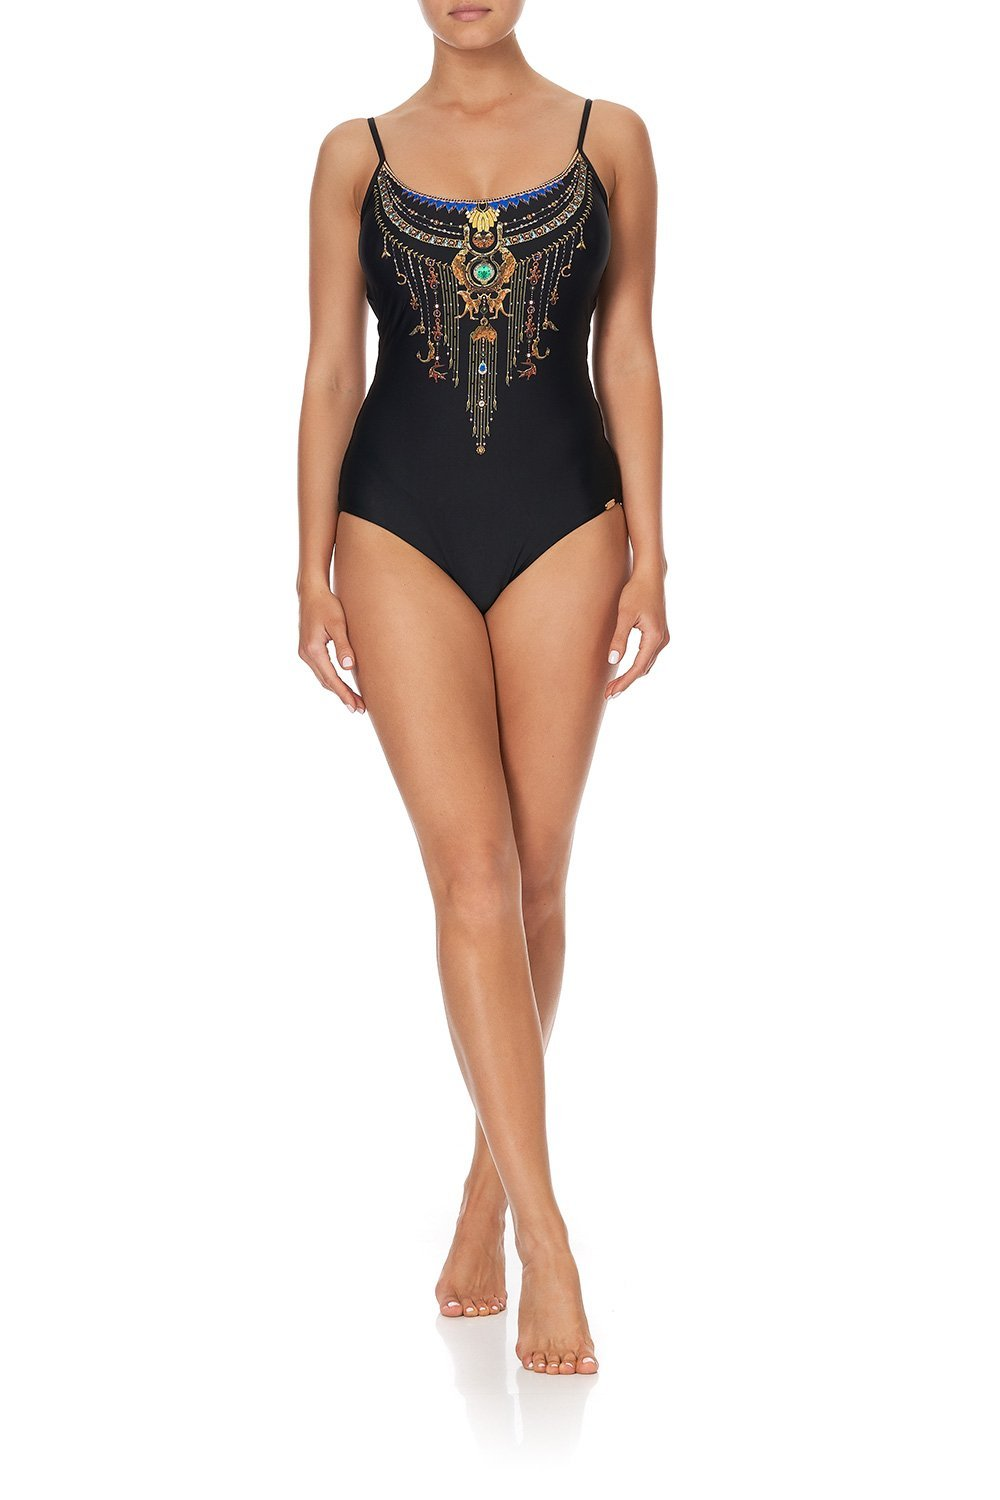 ROUND NECK ONE PIECE SOLID BLACK